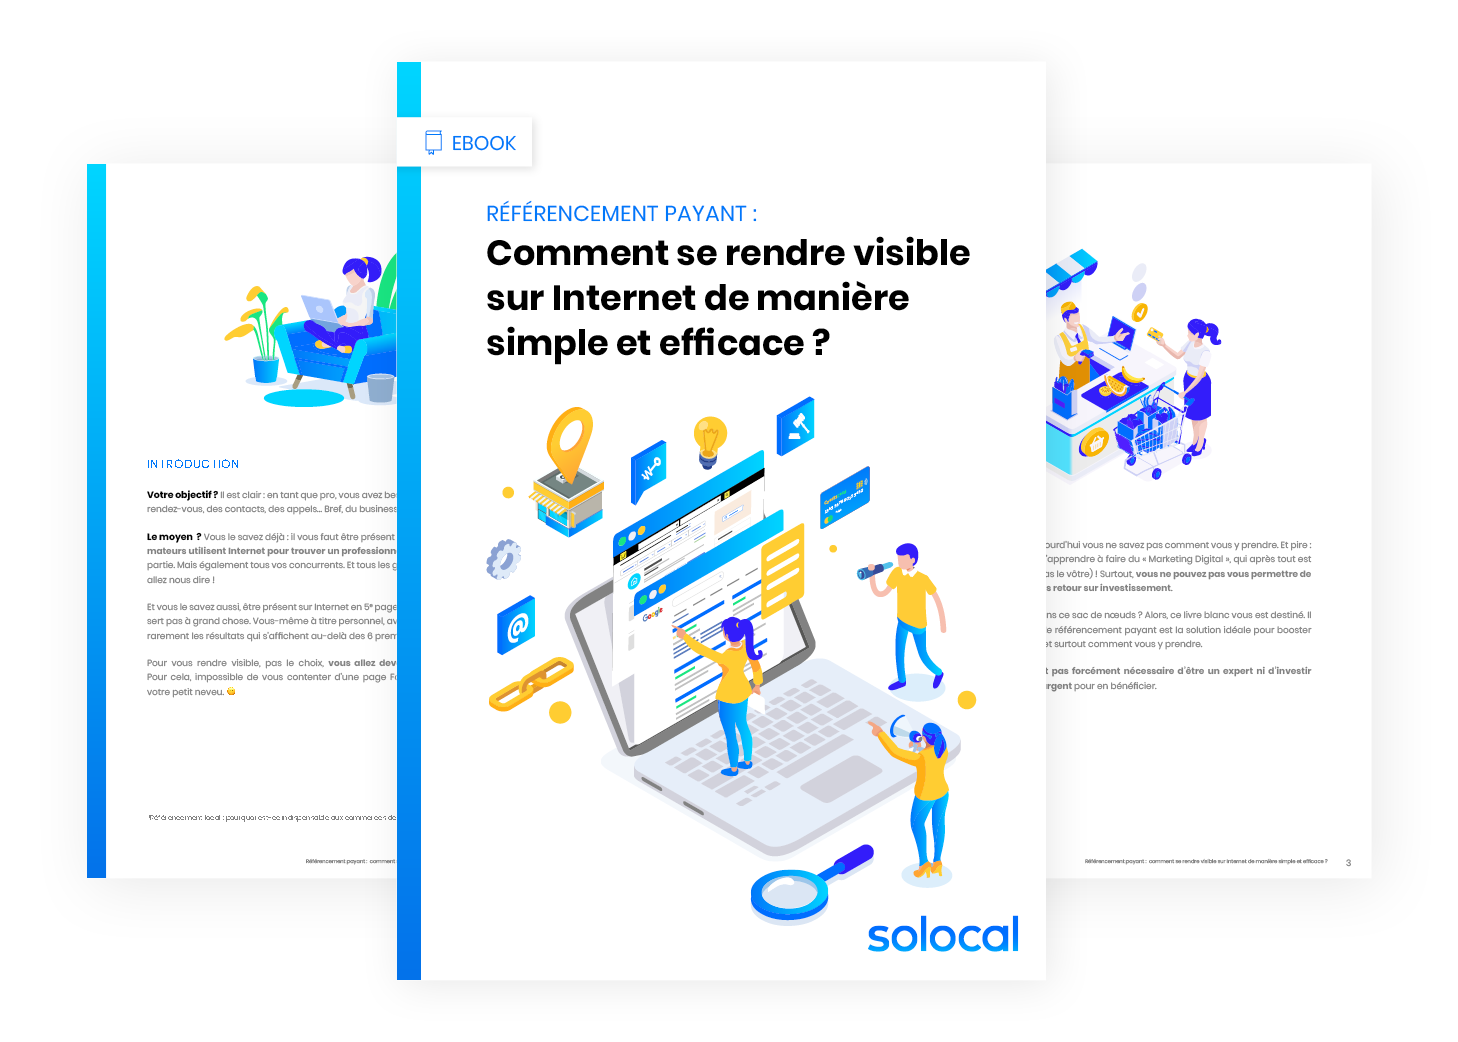 2021_Solocal_ebook_referencement_payant_site_visible_mockup